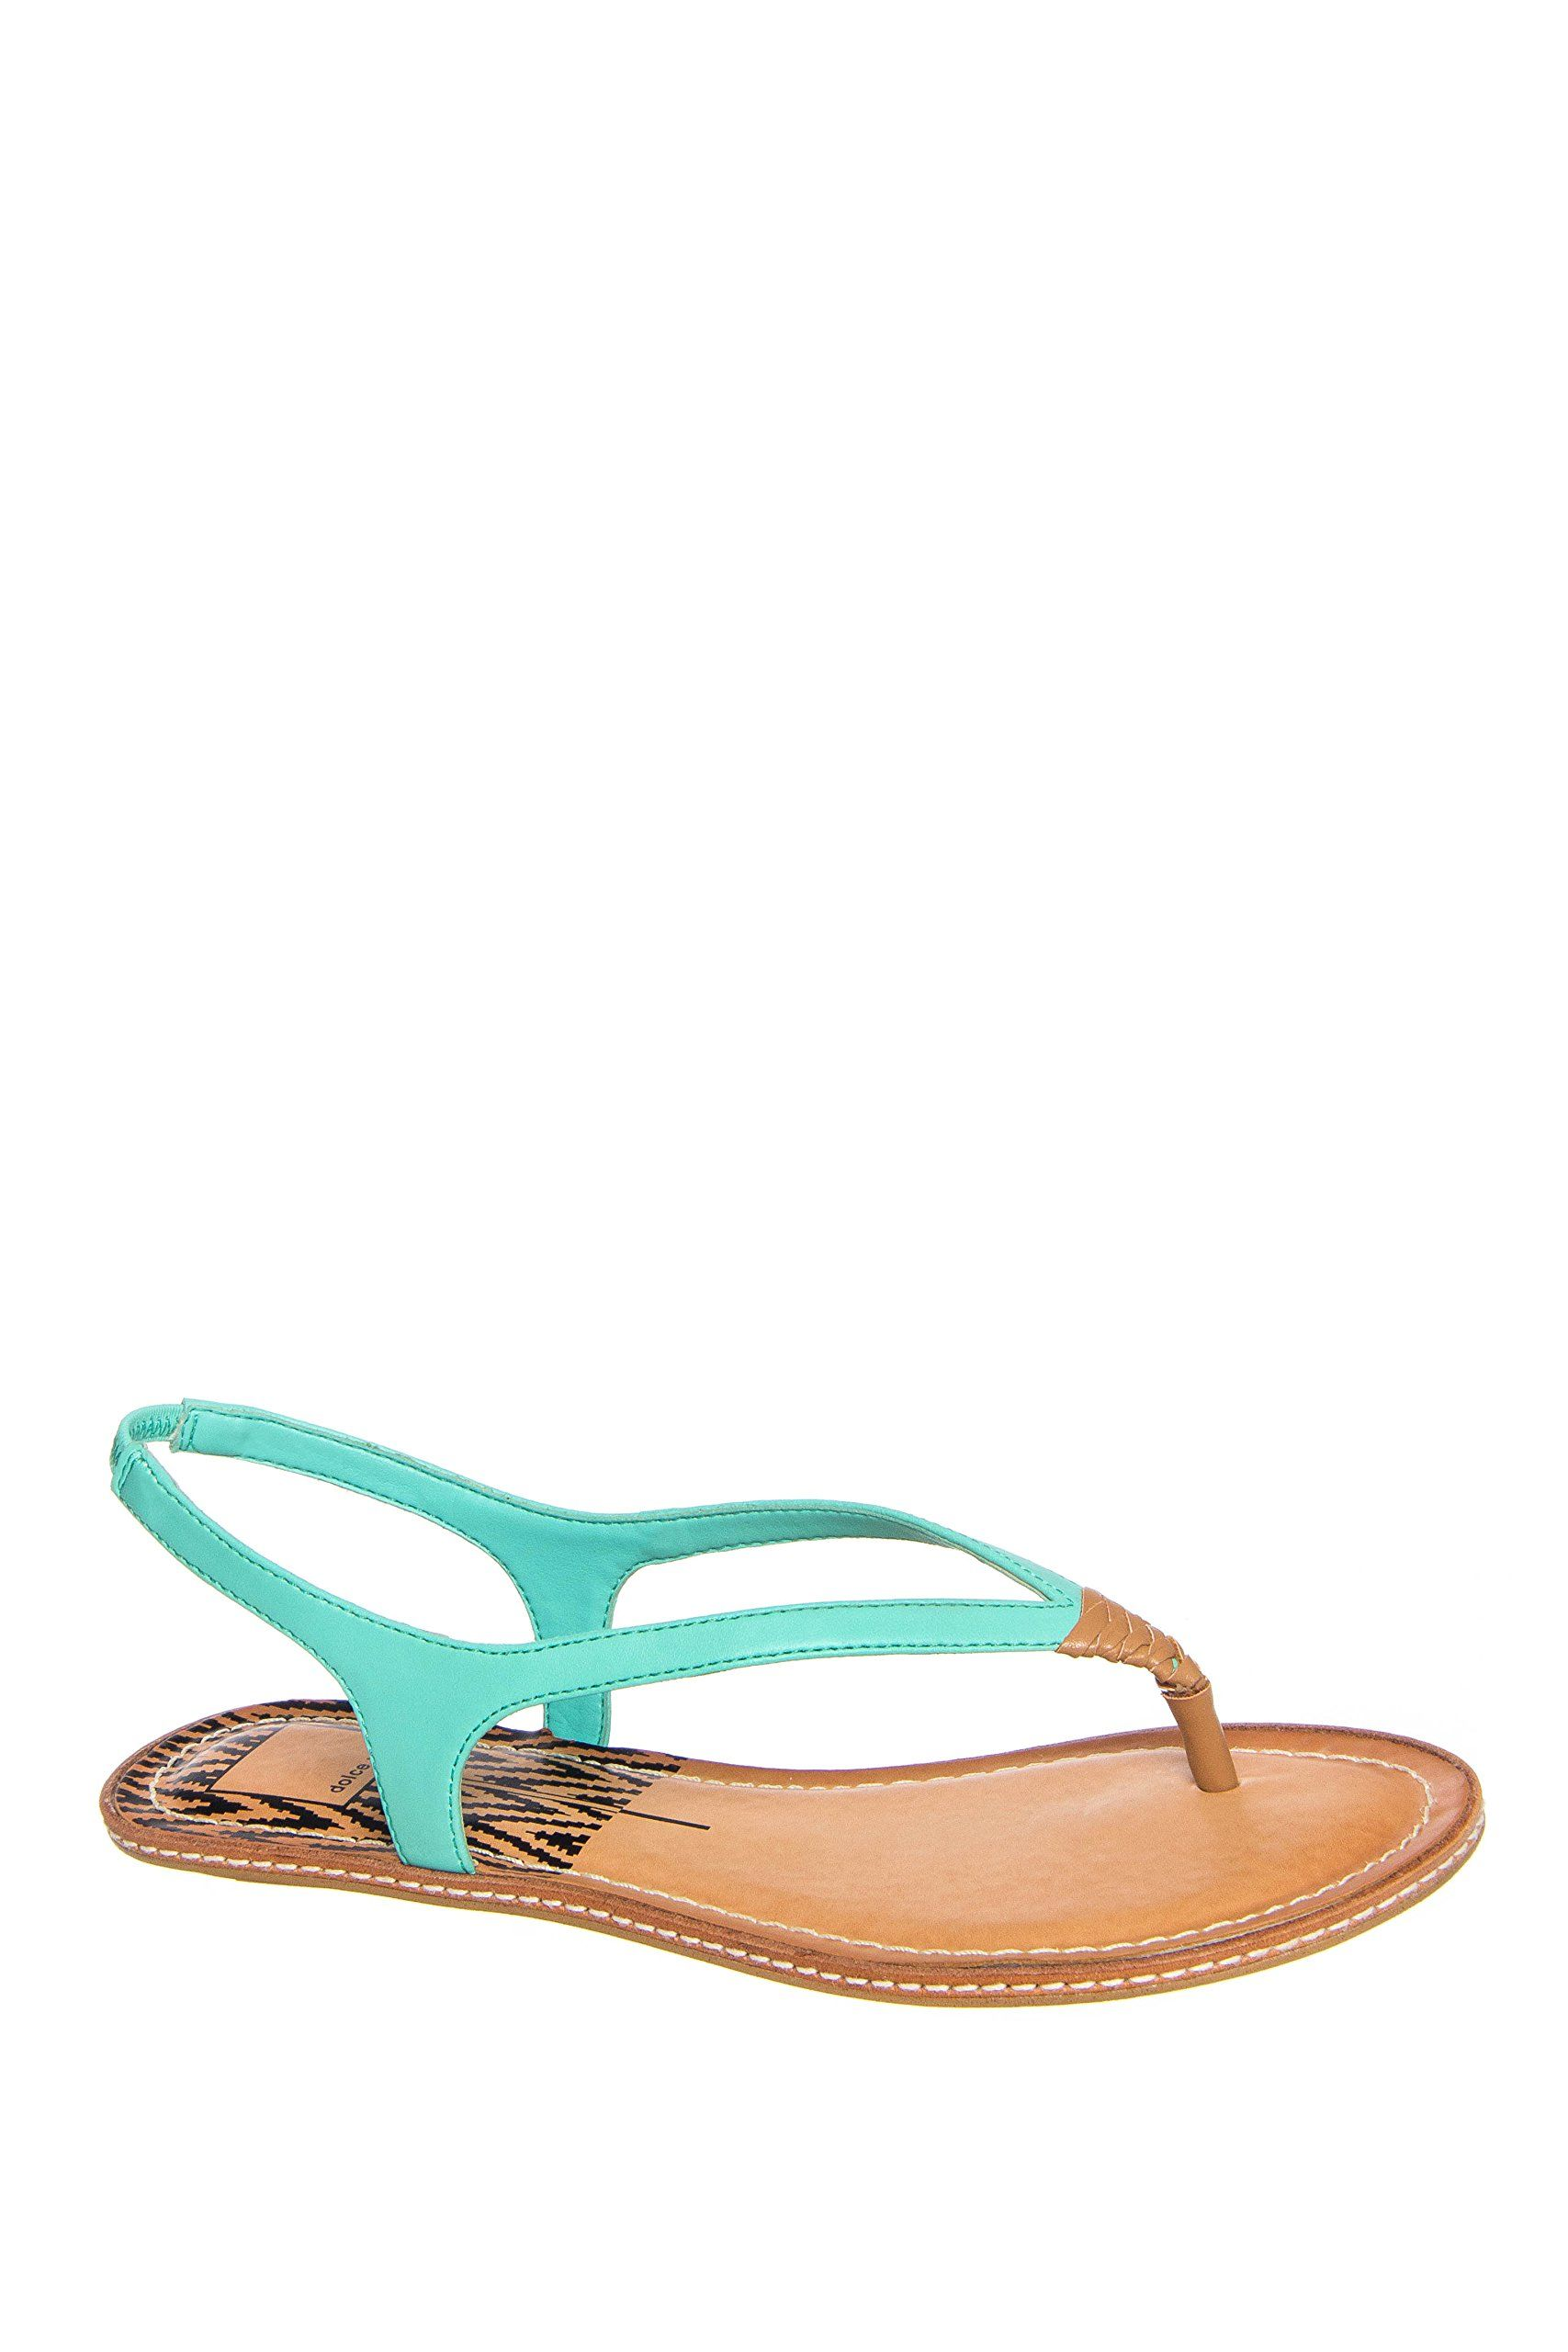 005d127063920 Dolce Vita Kay Thong Flat Sandal. Leather upper. Buckle closure. Barely  there style